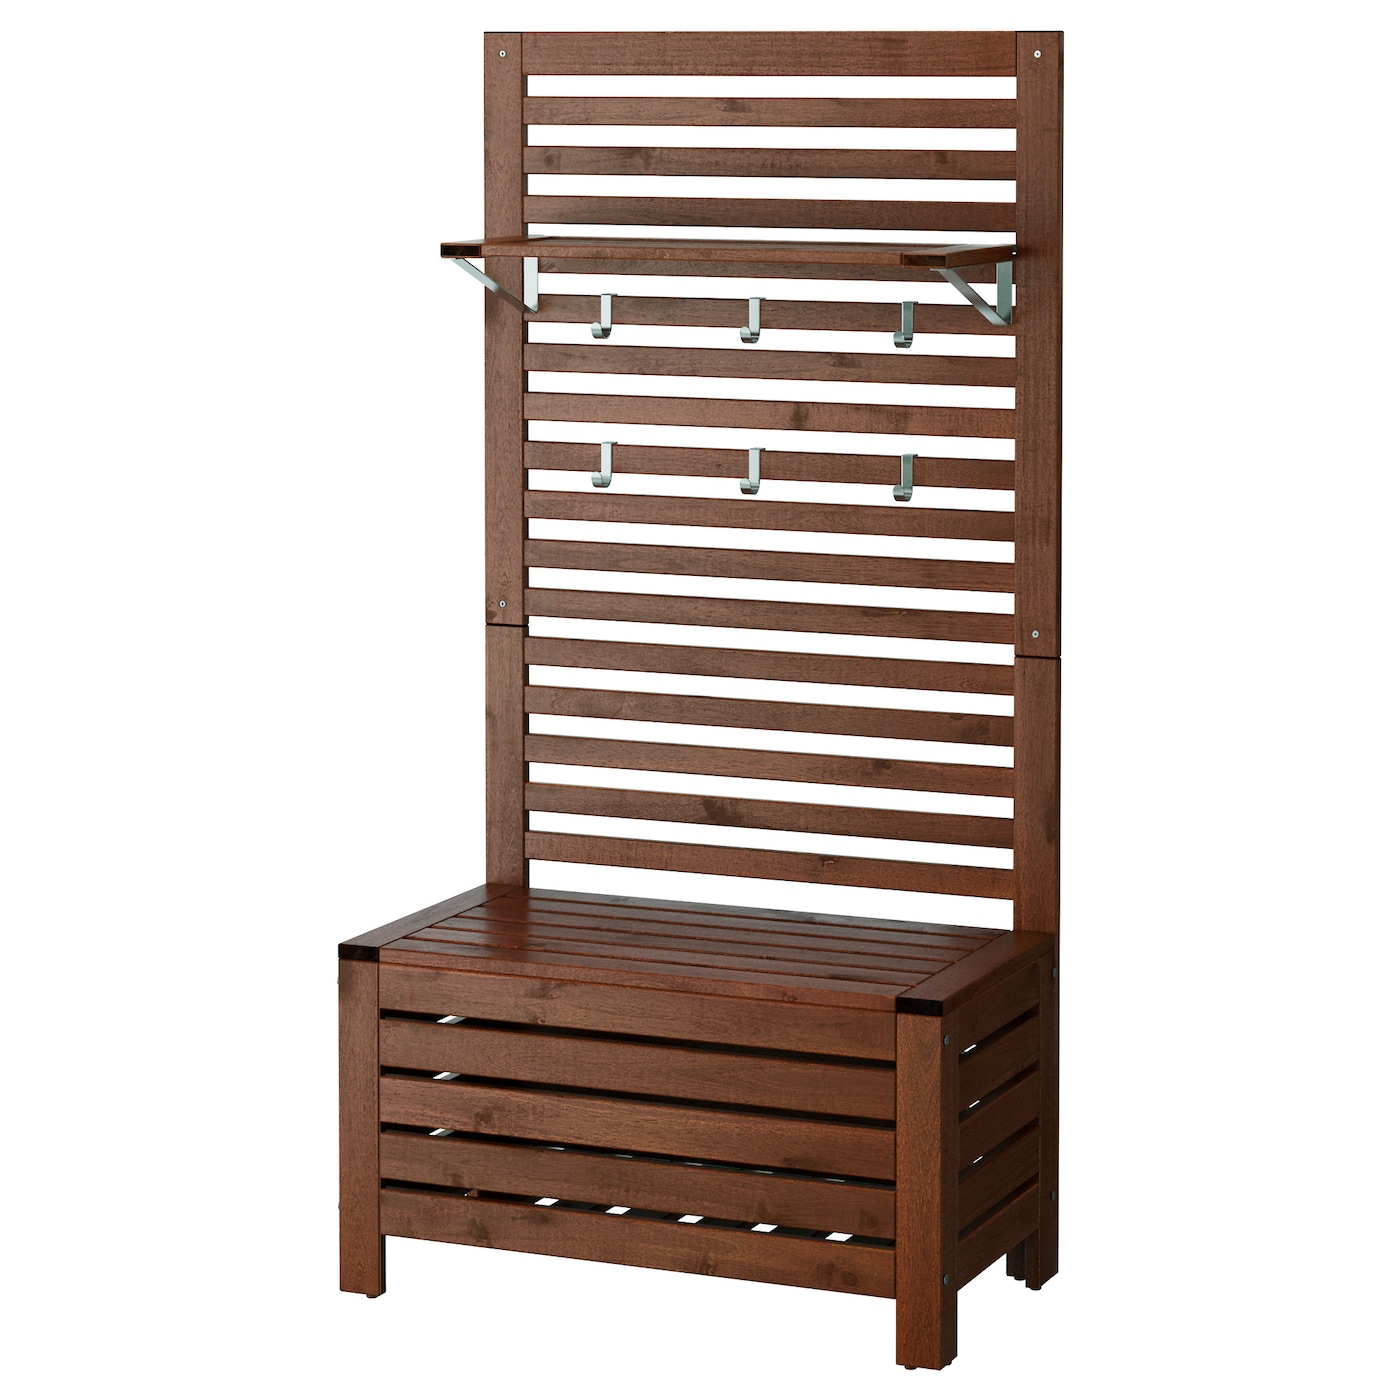 Pplar bench w wall panel shelf outdoor brown stained 80x44x158 cm ikea Bench with shelf